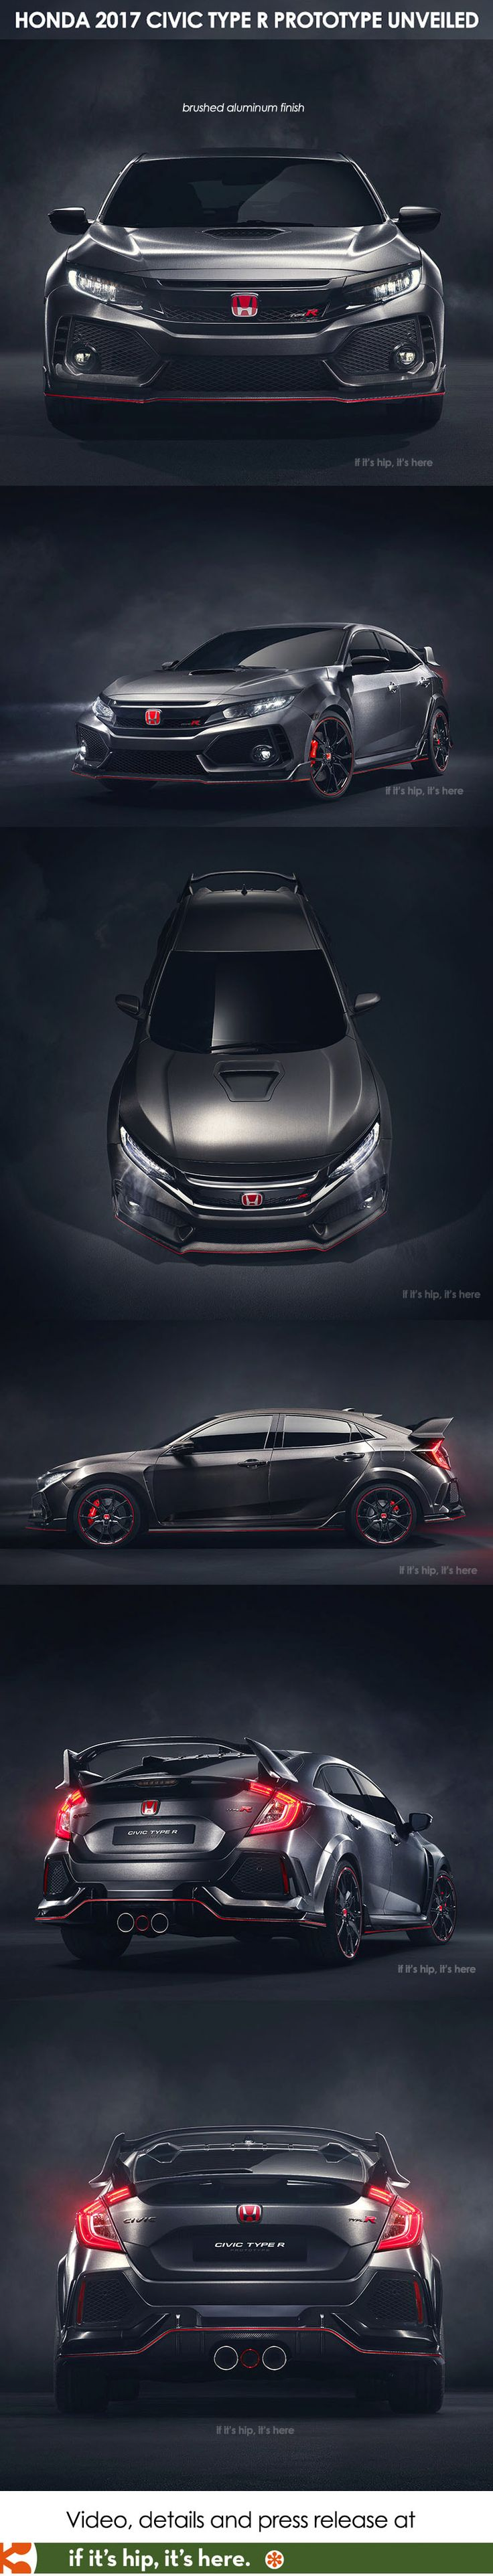 Sneak peek at the radical new brushed aluminum finish Honda Civic Type R which will be the first first-ever Honda-badged Type R in the U.S.